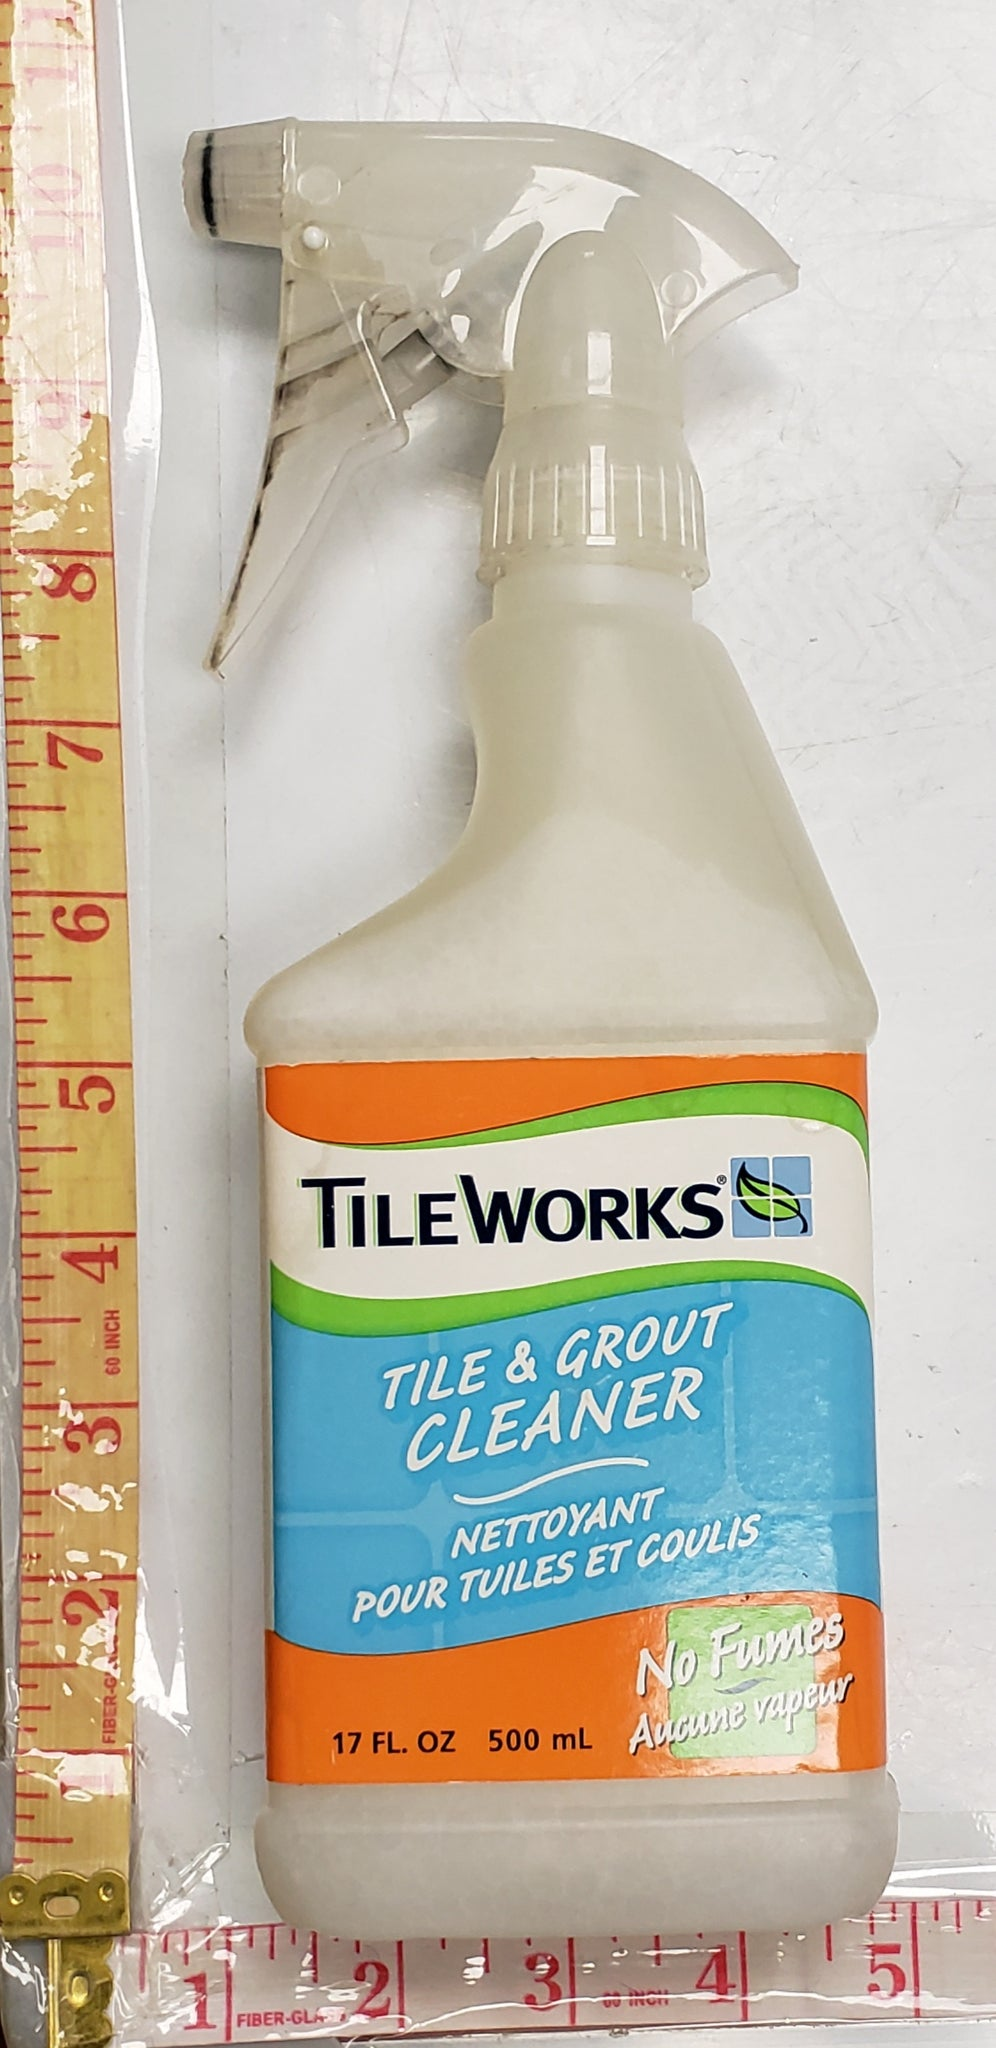 GL-03-92500 TILEWORKS TILE & GROUT CLEANER NO FUMES 500ML $2.75/PC ## - Home Idol Home Improvement Outlet